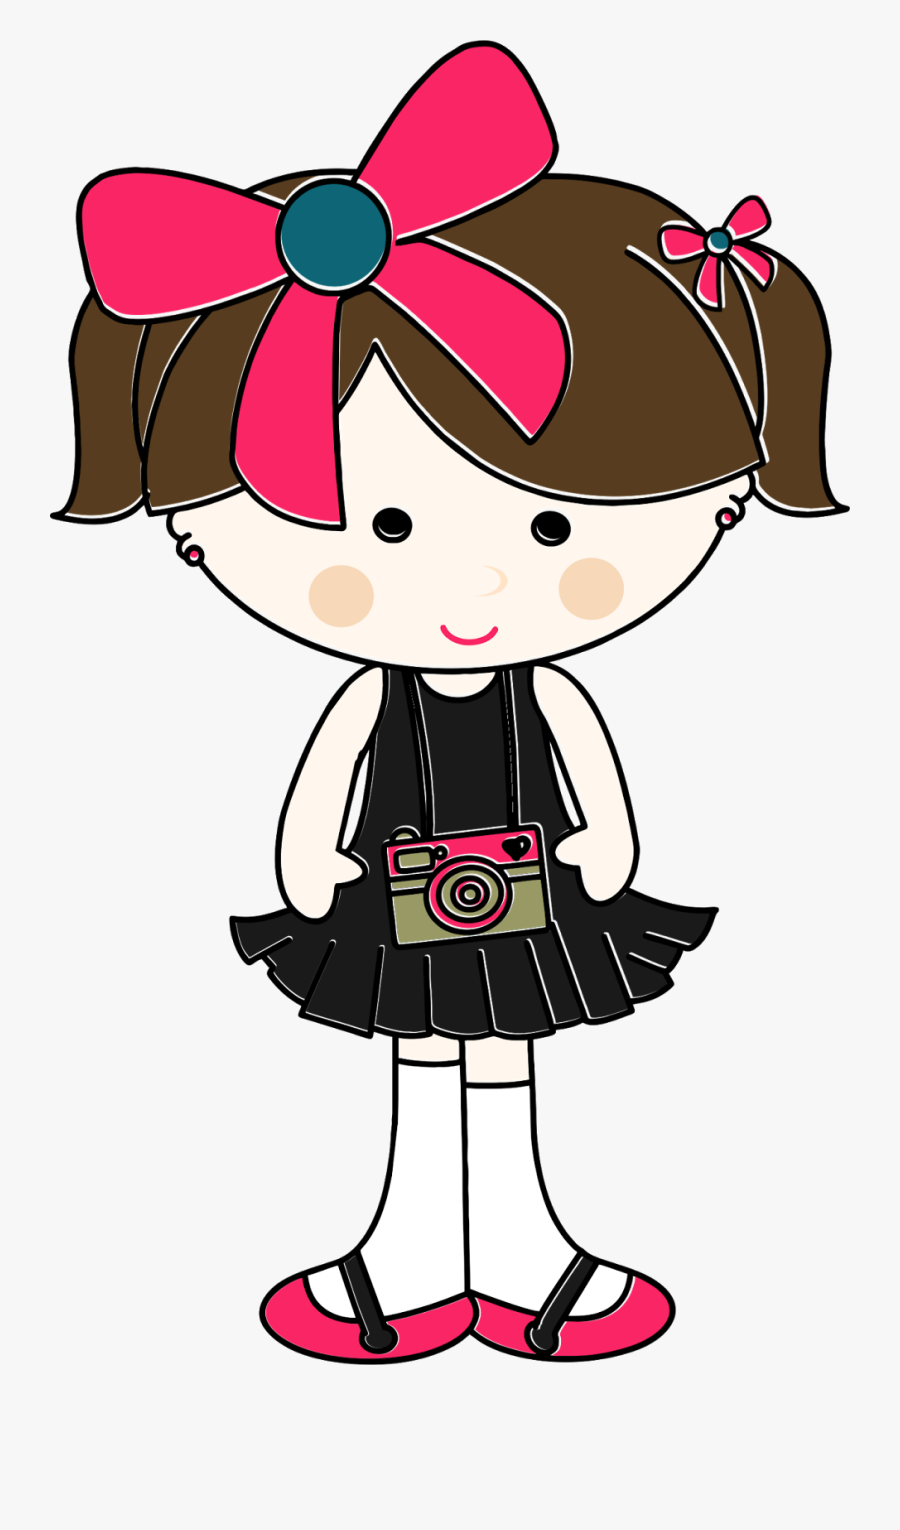 Transparent Doll Clipart Png - Boneca Design Grafico, Transparent Clipart